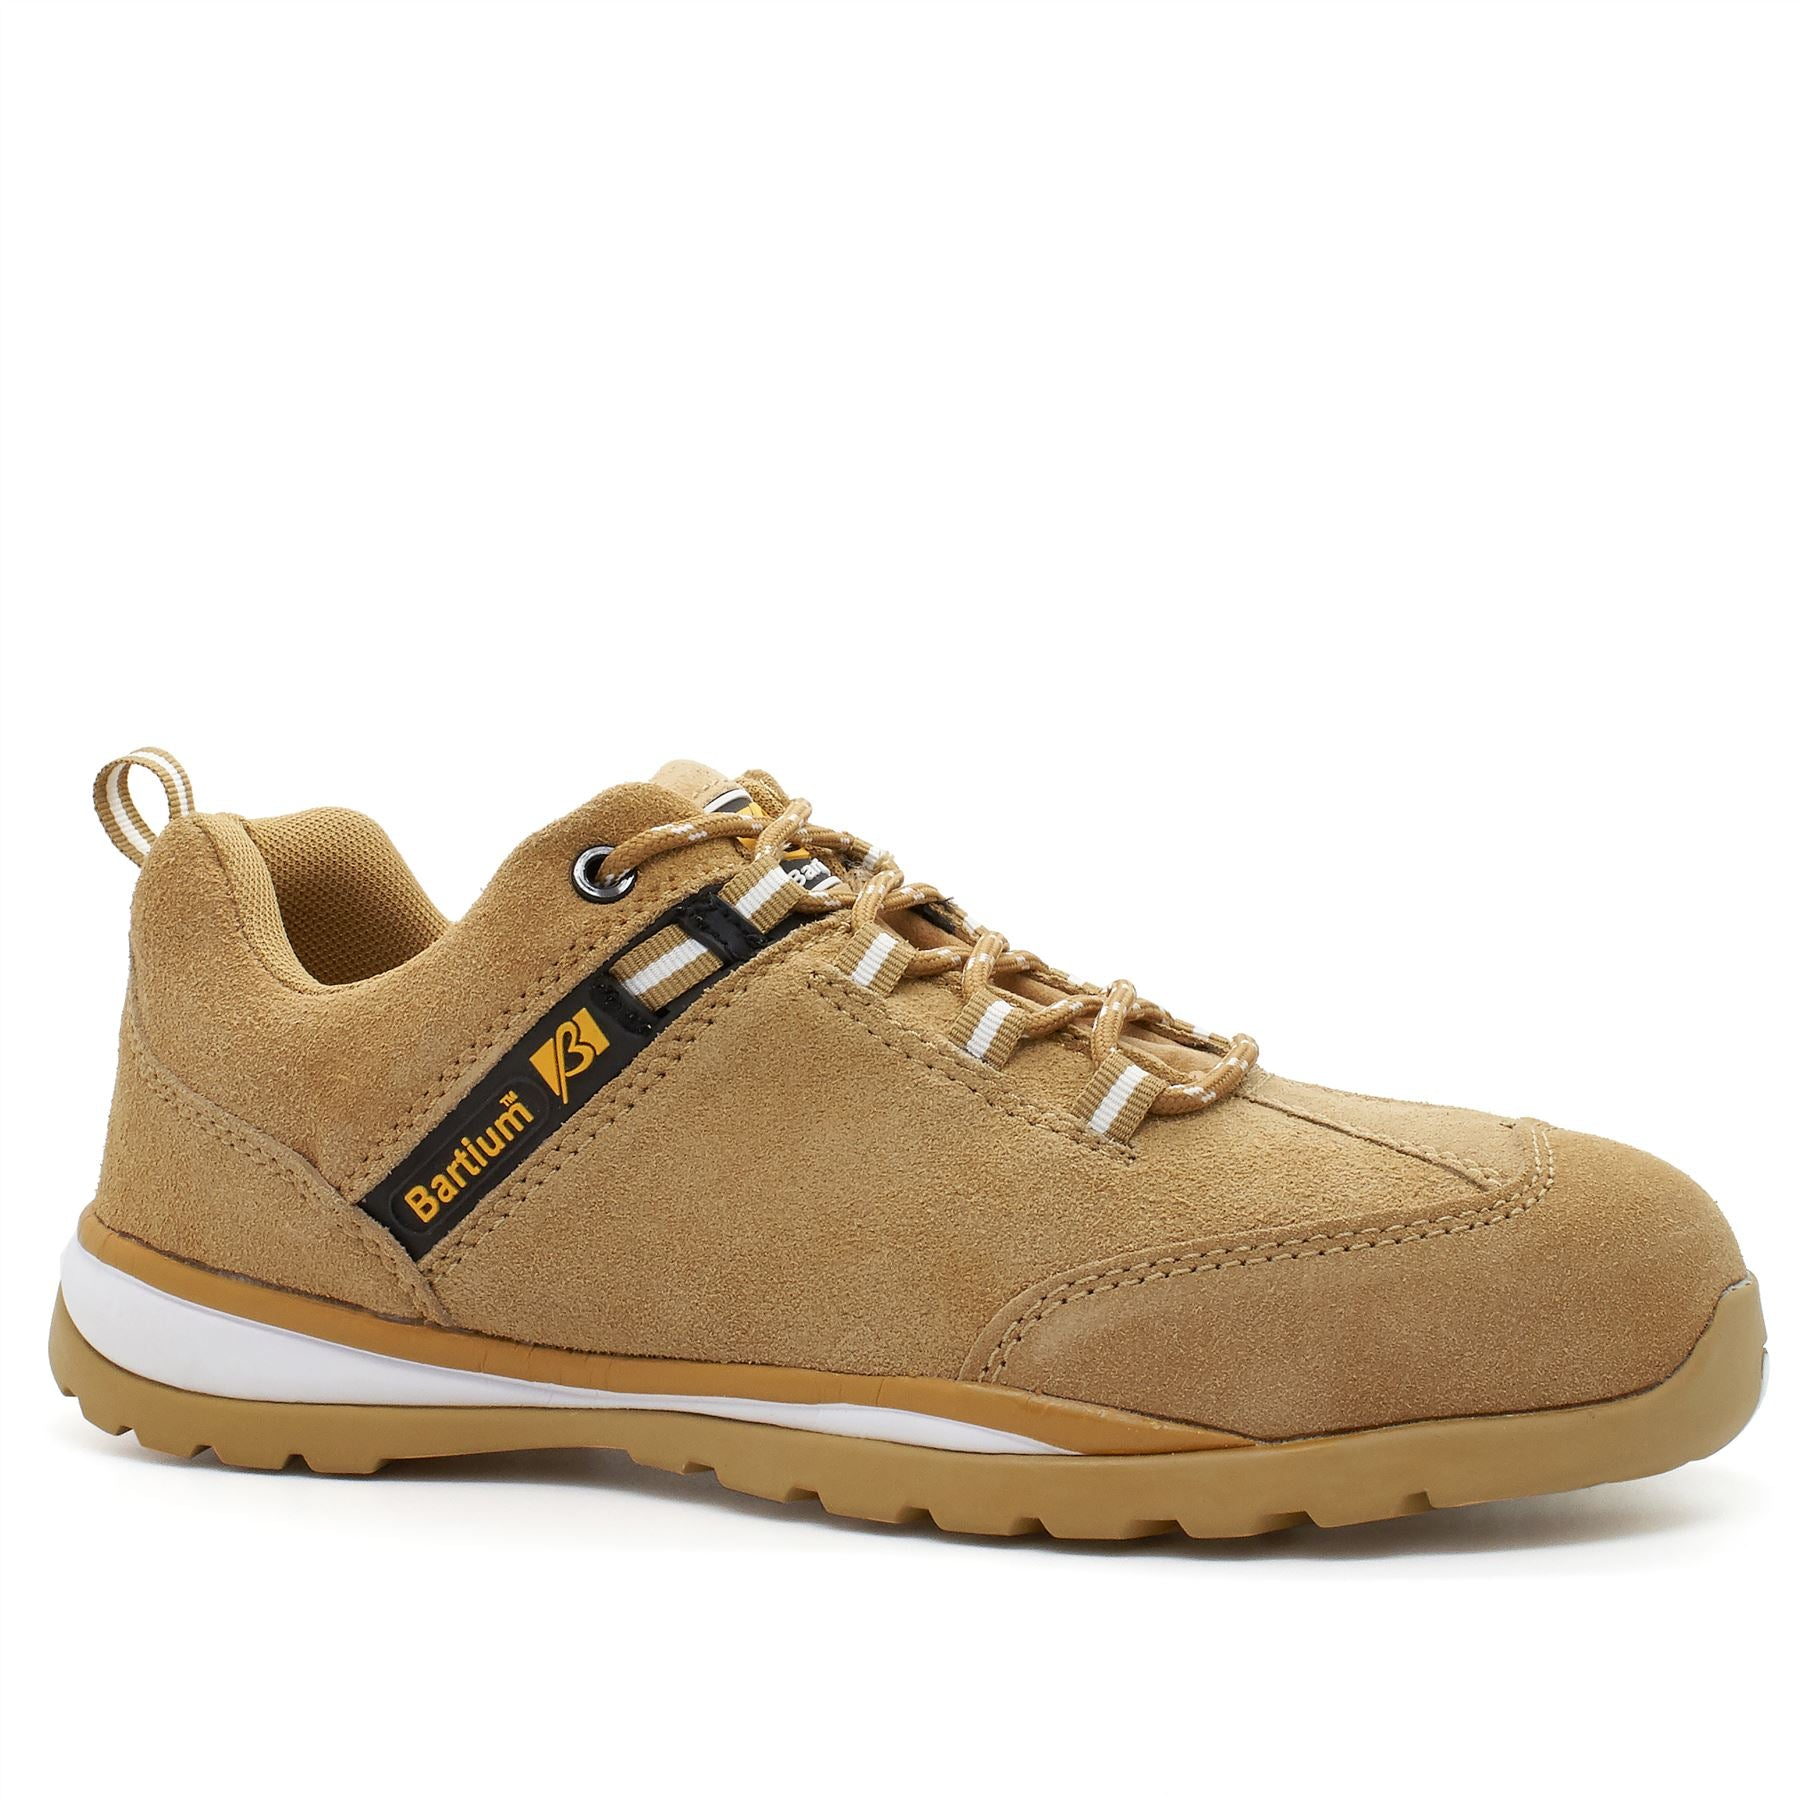 Sand Suede Composite Safety Trainers